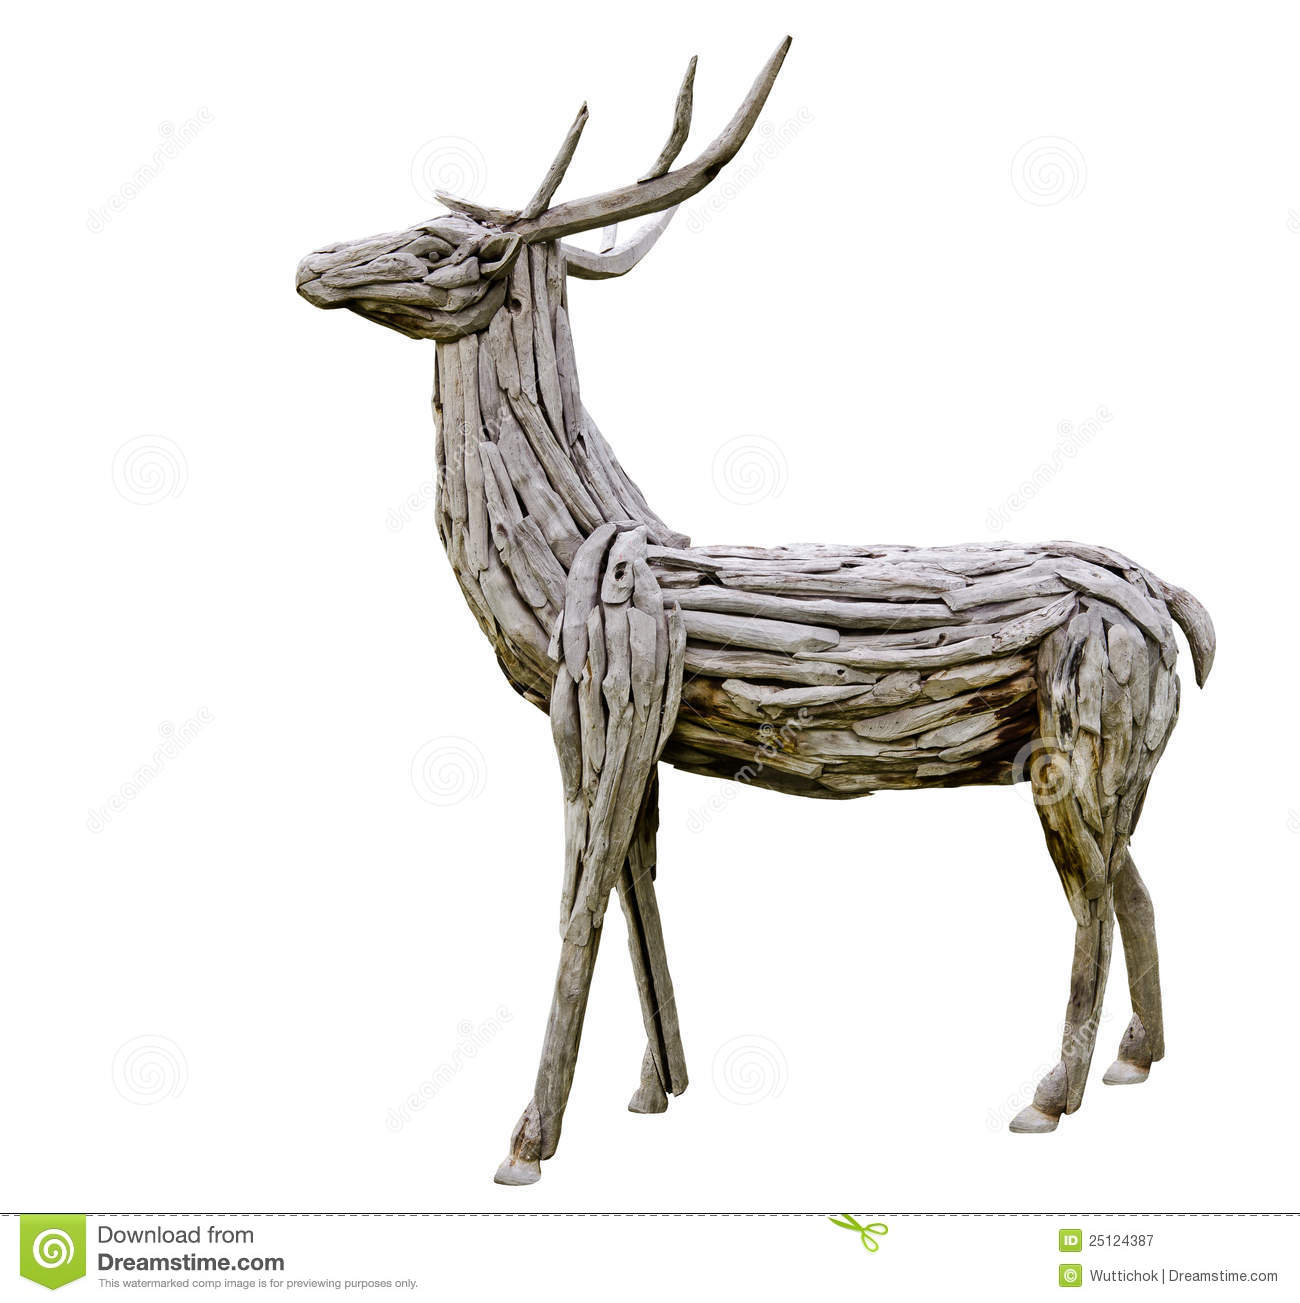 garden chair design plans benchmaster ventura leather and storage ottoman deer made from wood royalty free stock photography - image: 25124387